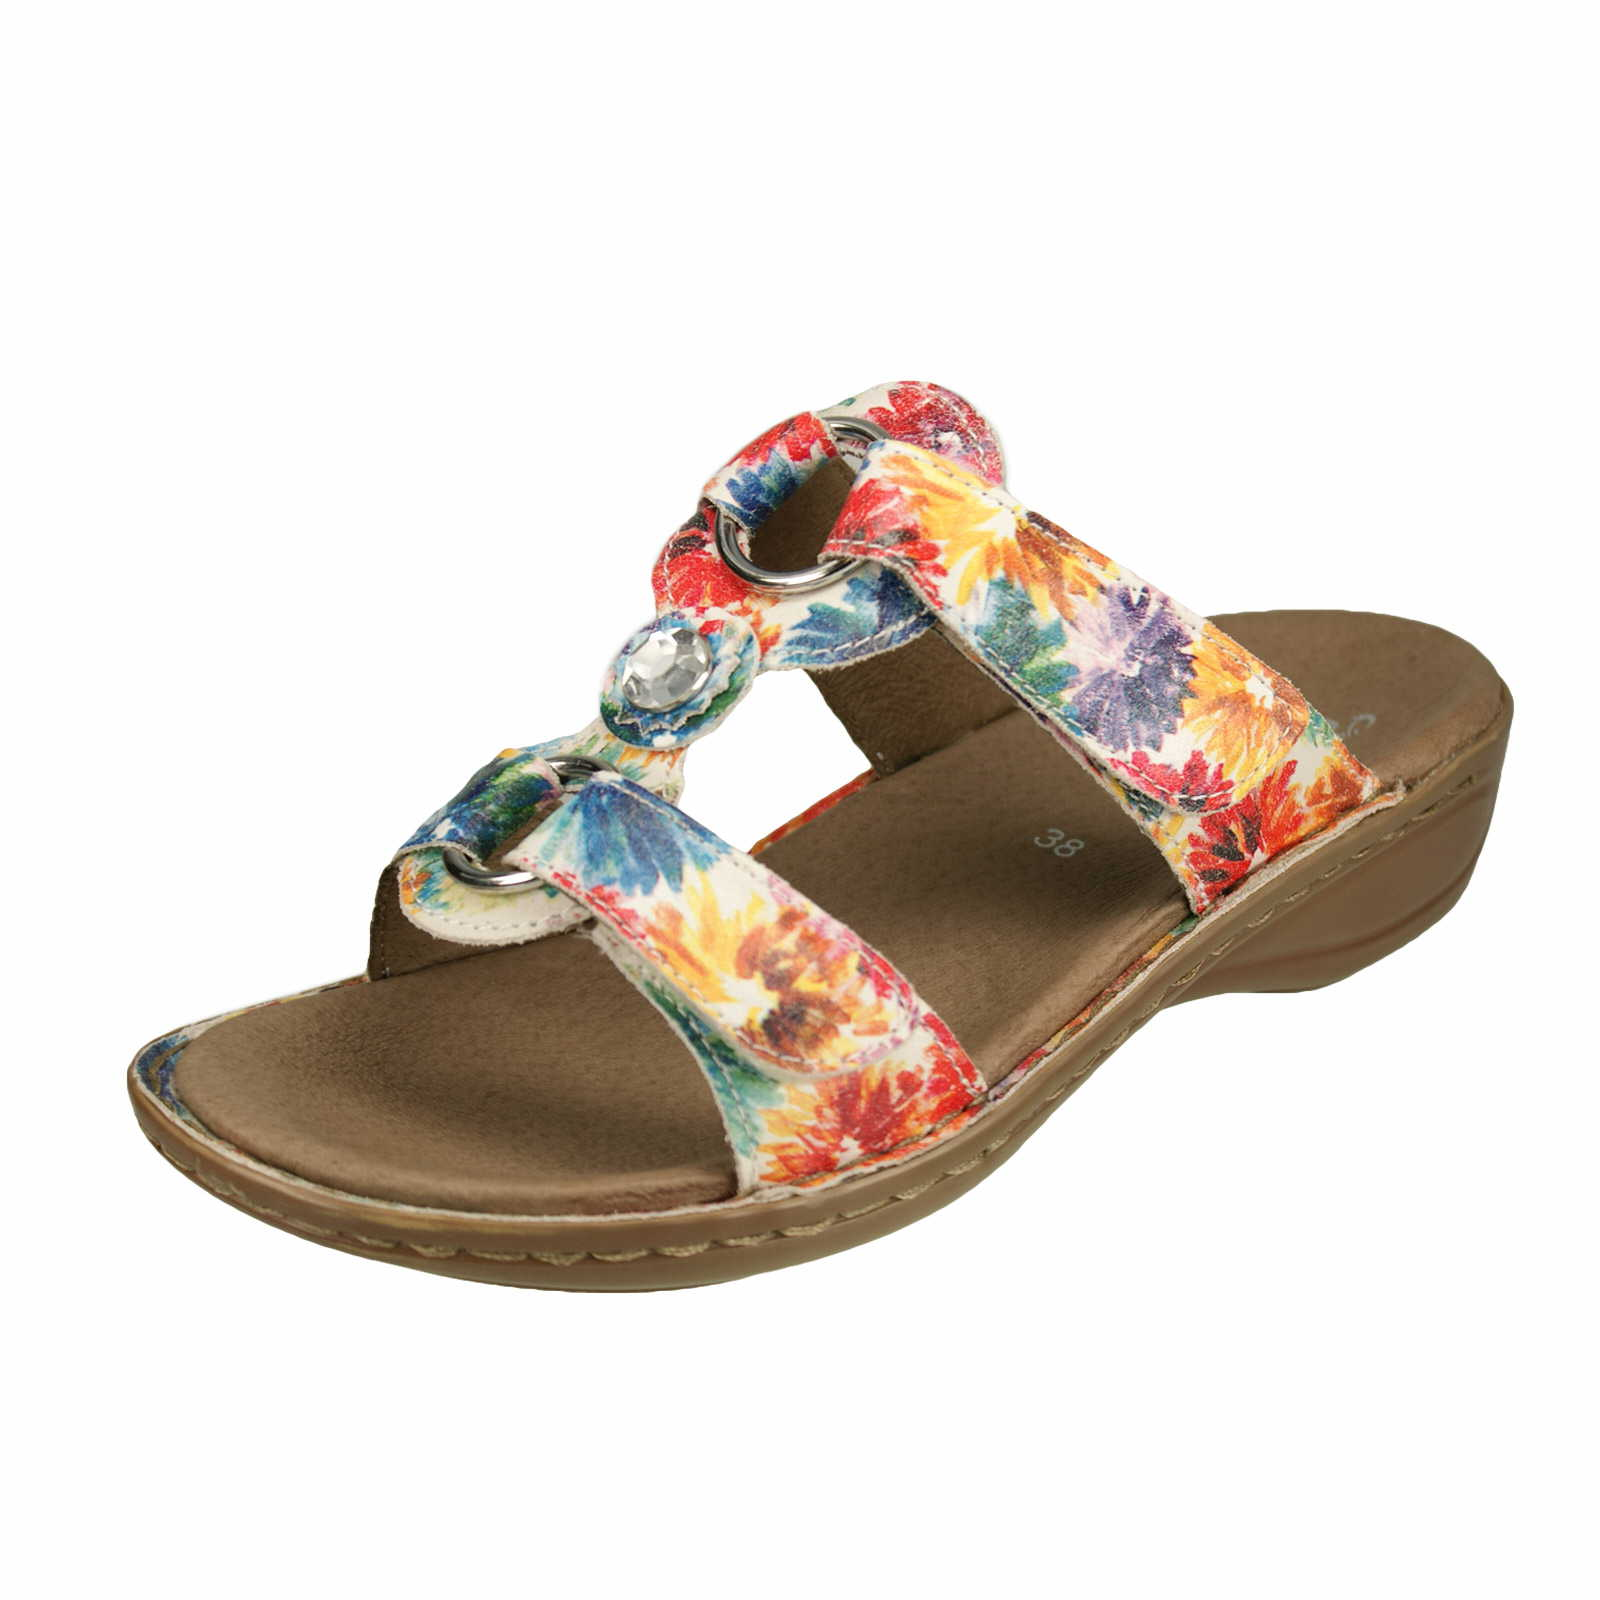 Damen Pantolette Hawaii multi - Hawaii 12-27273-16